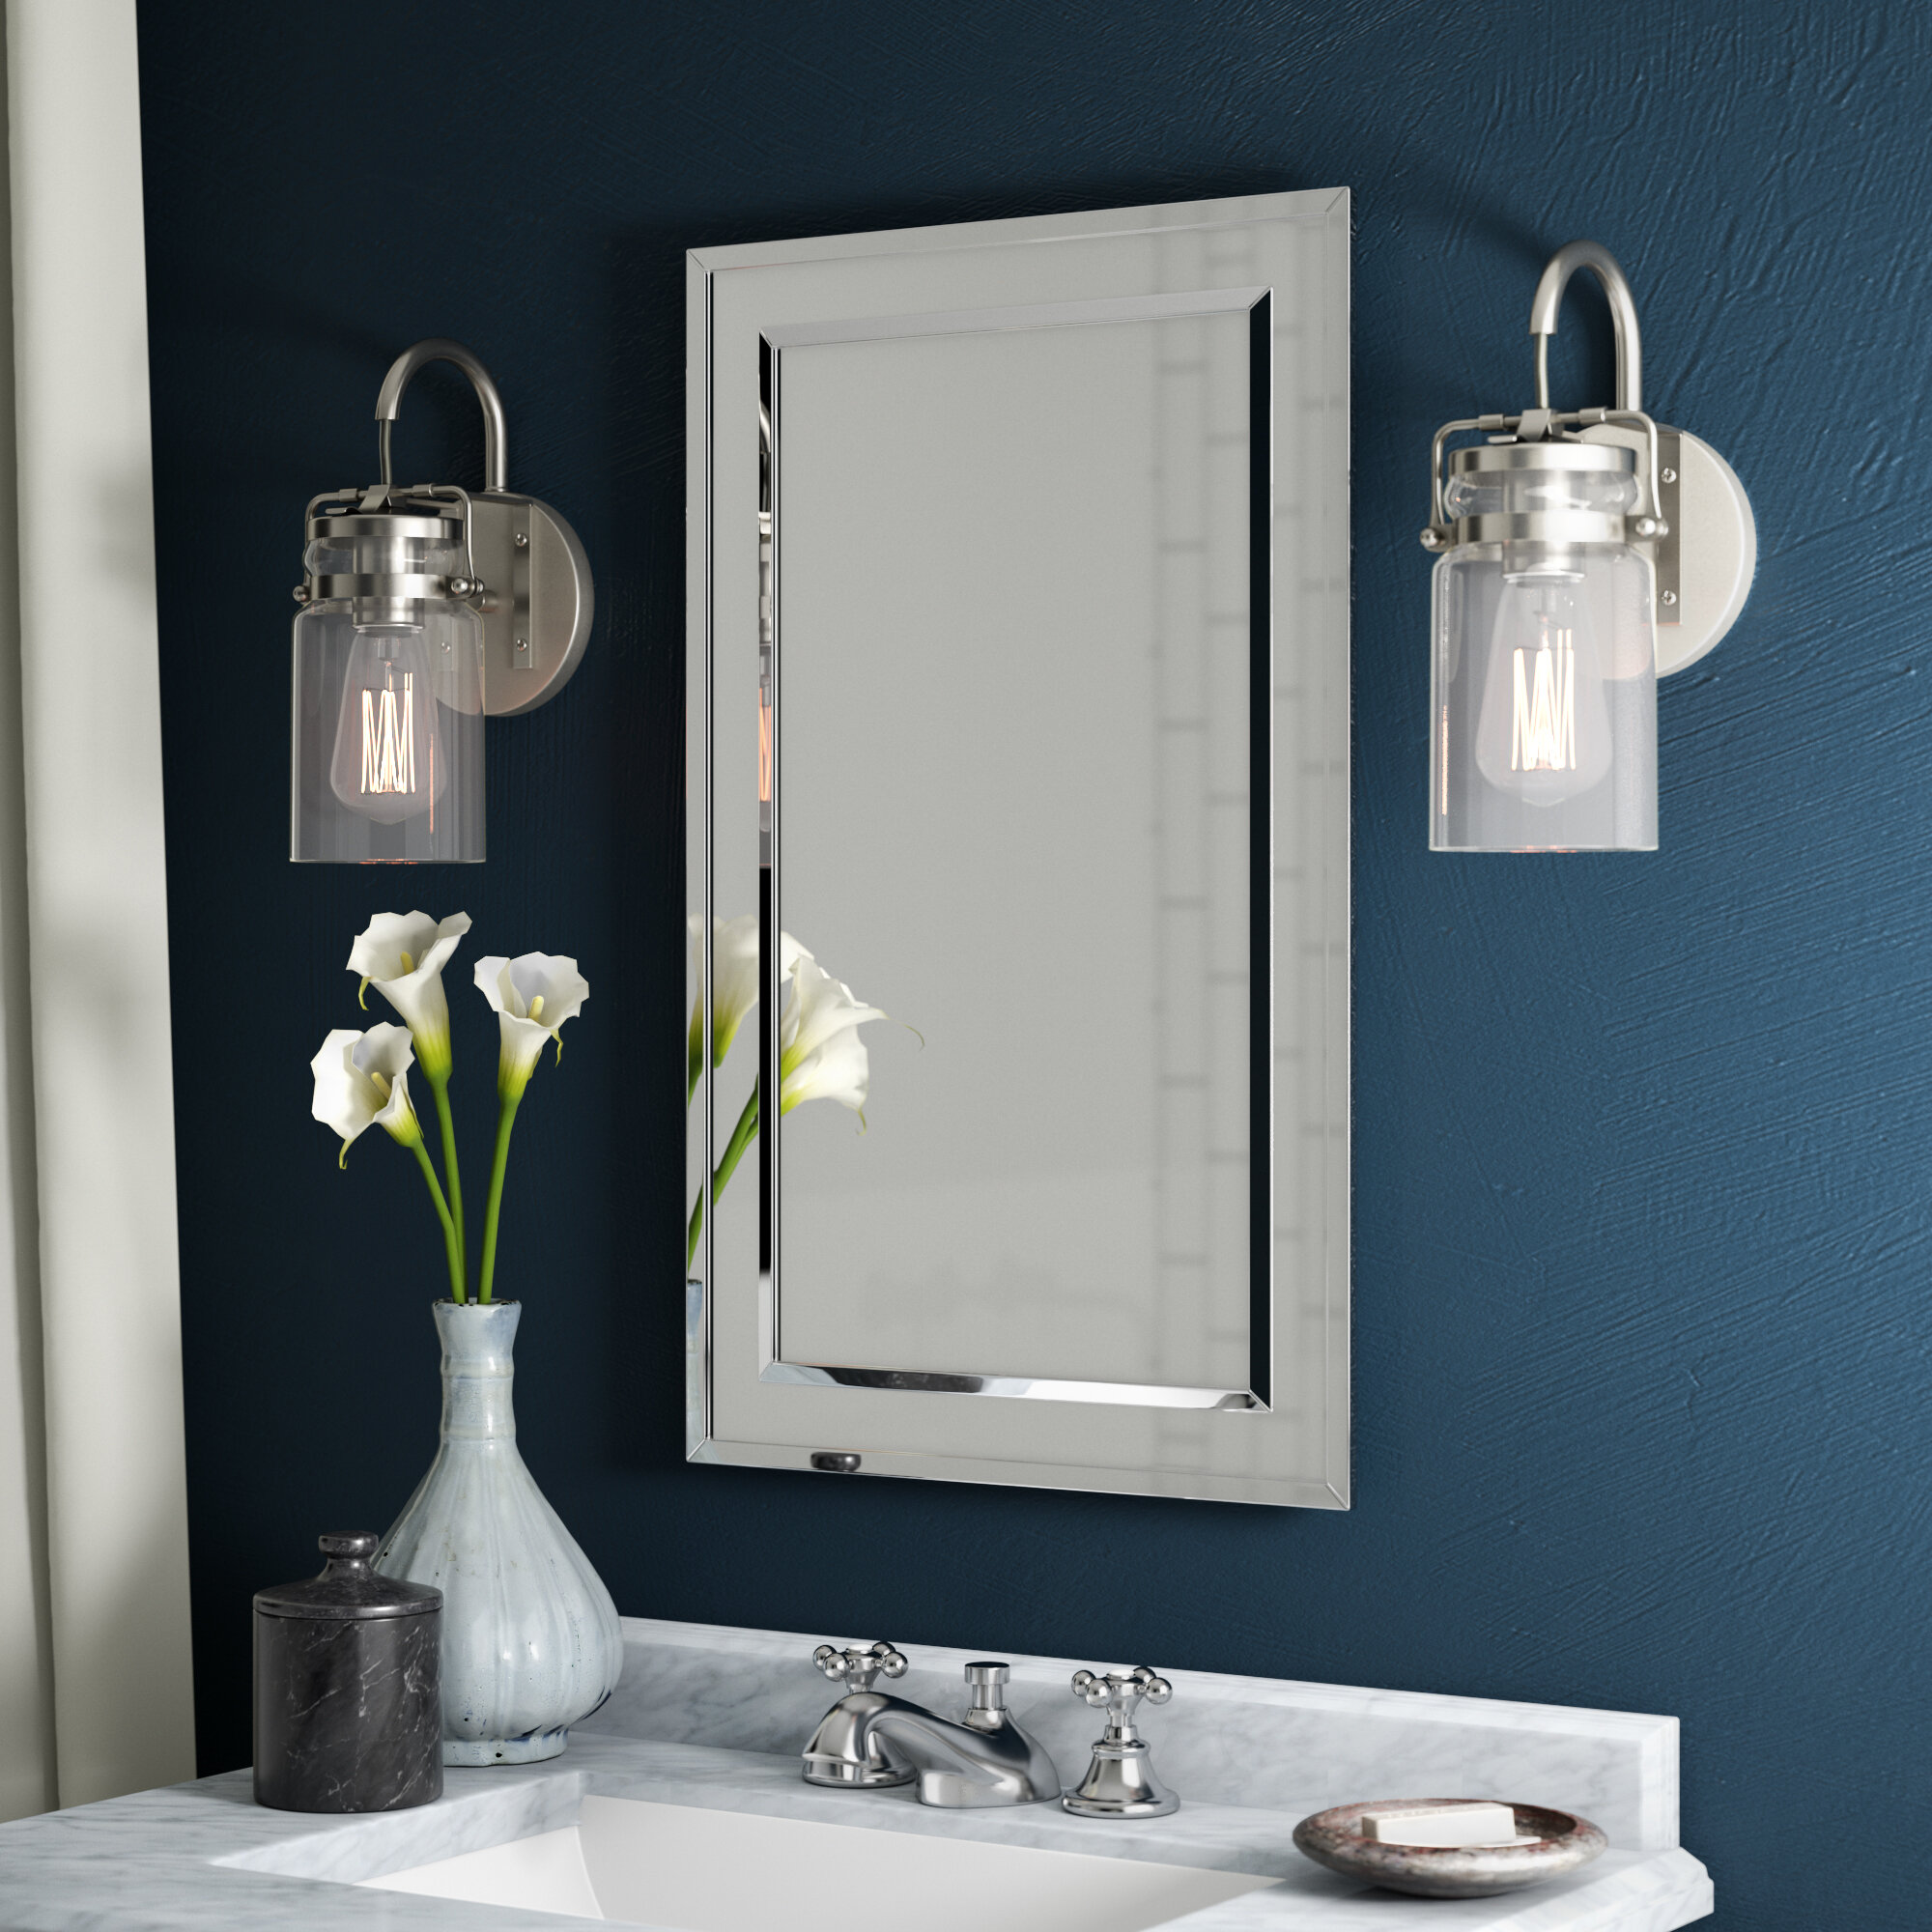 Greyleigh Graford 16 X 26 Recessed Framed Medicine Cabinet With